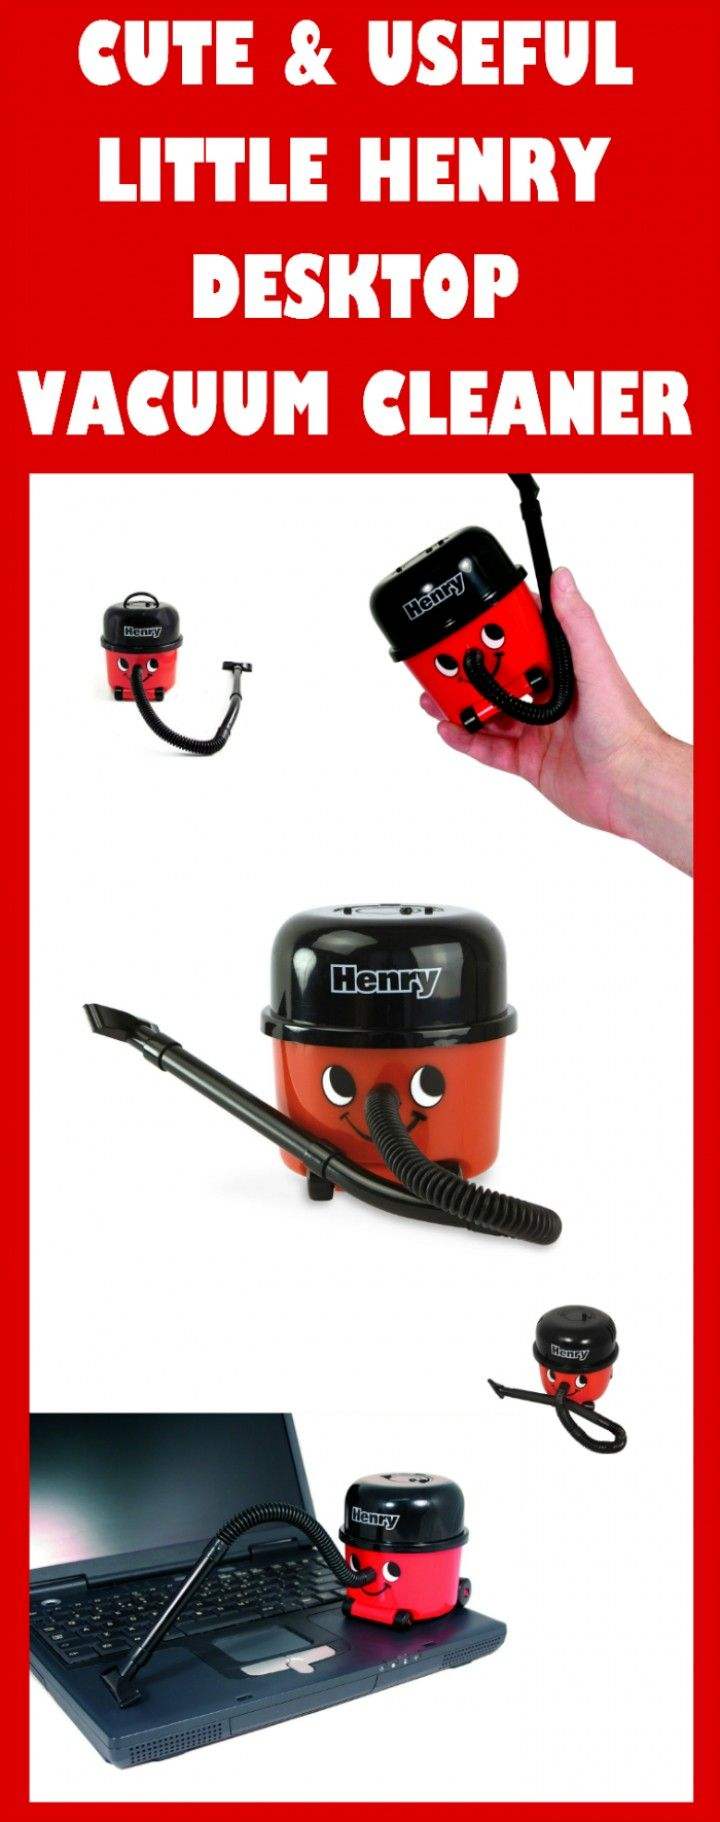 best ideas about office gifts gifts for extremely cute henry desktop vacuum cleaner great office or home gift